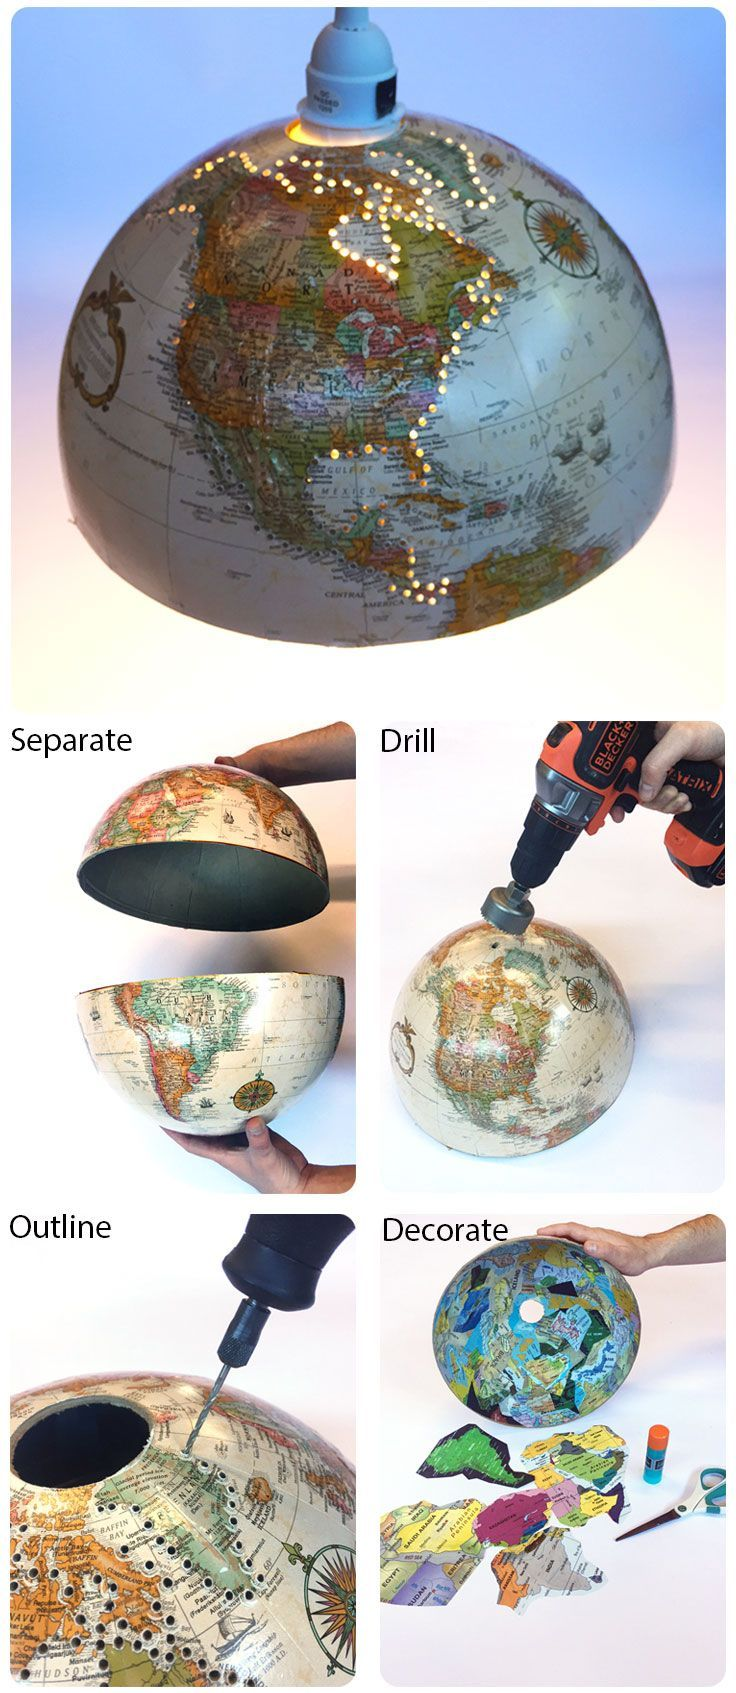 Diy Lamp Idea Shining New Light Into An Old Globe Diy Lamp Old Globe Diy Lamp Shade